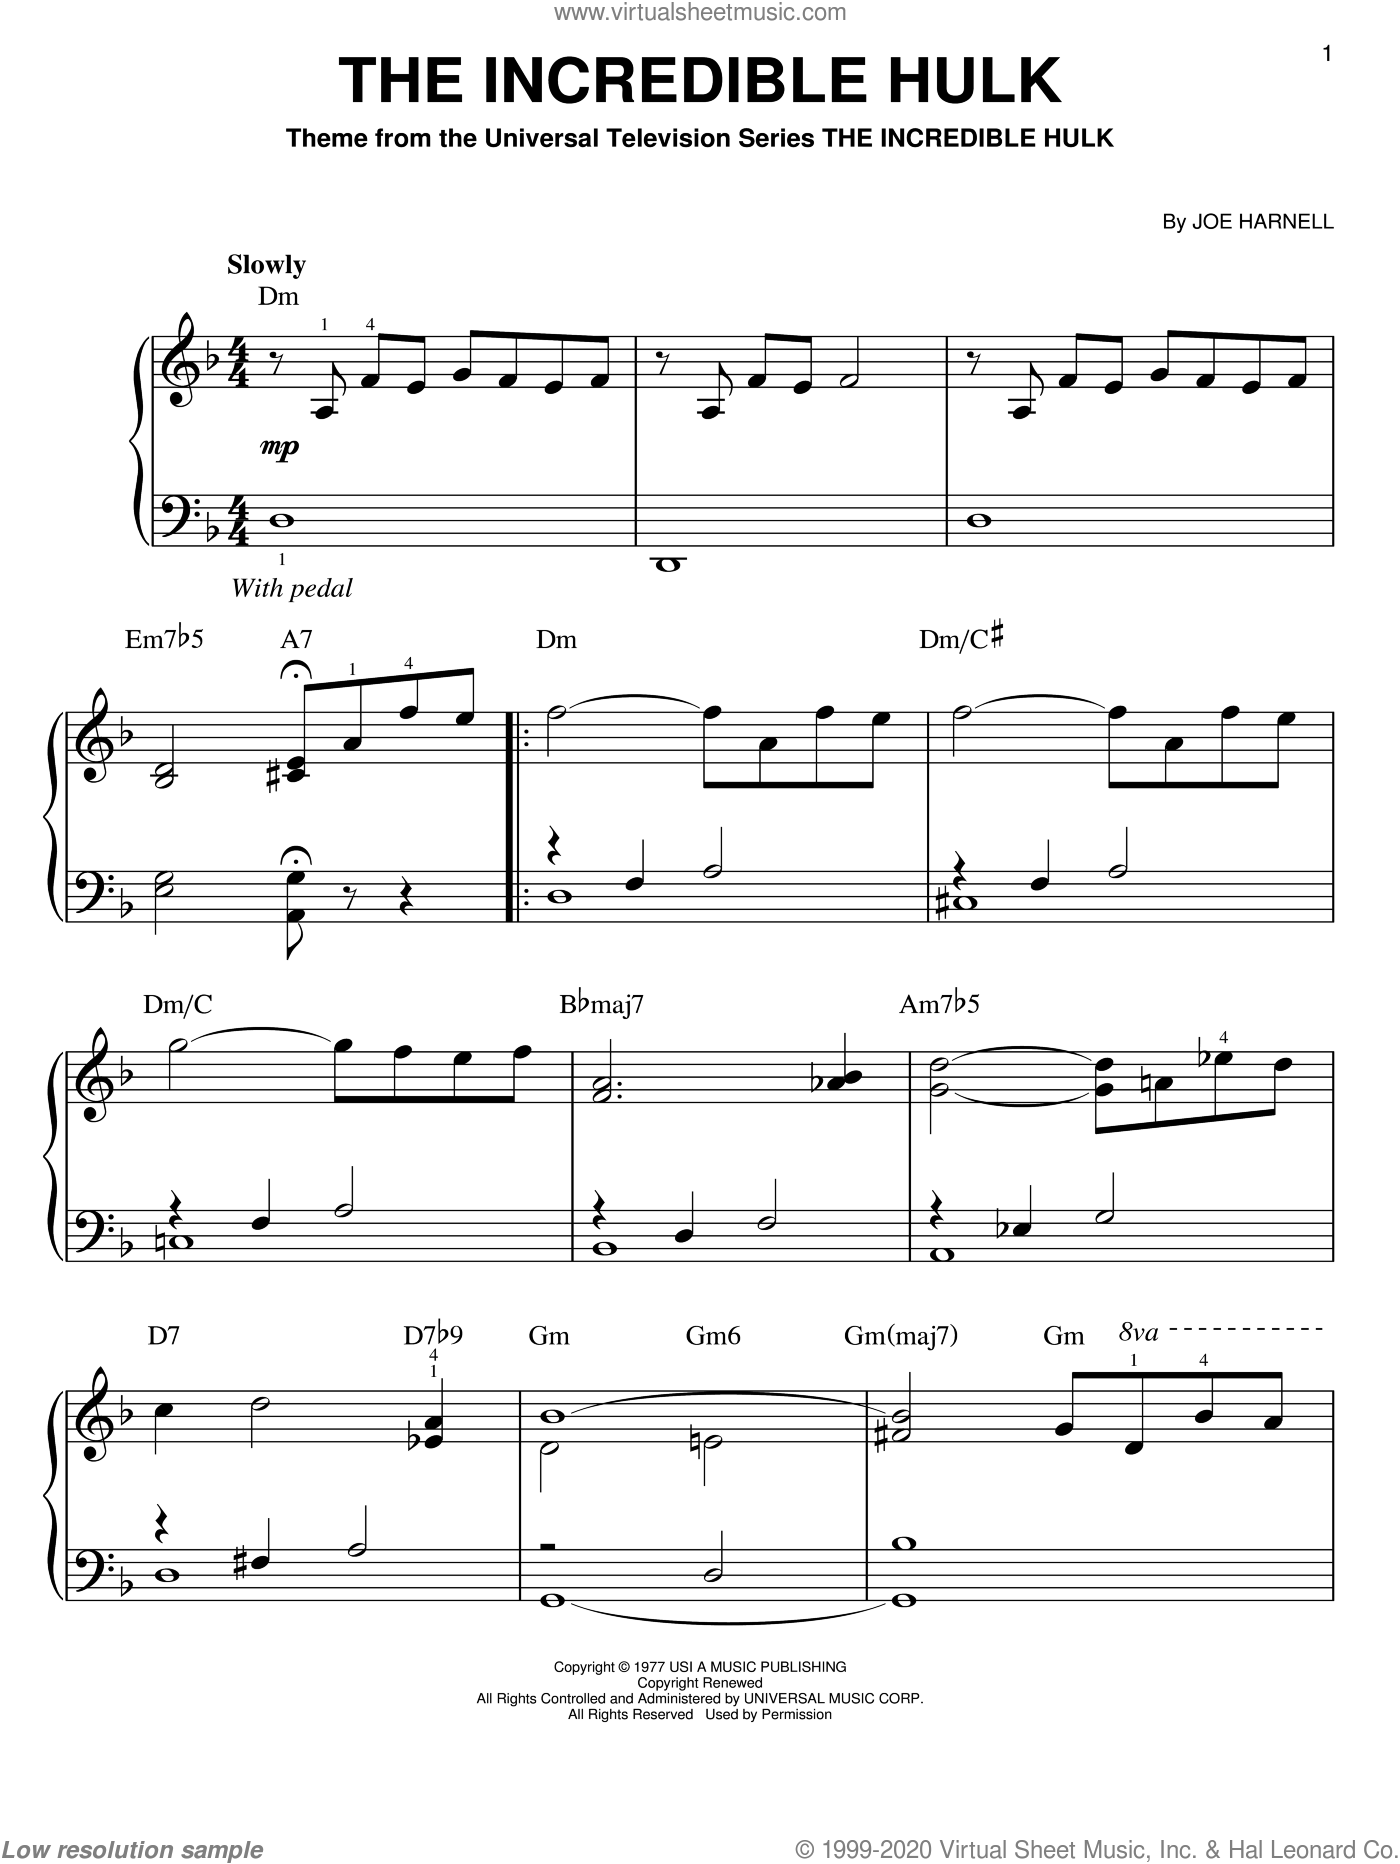 The Incredible Hulk sheet music for piano solo by Joe Harnell, easy skill level